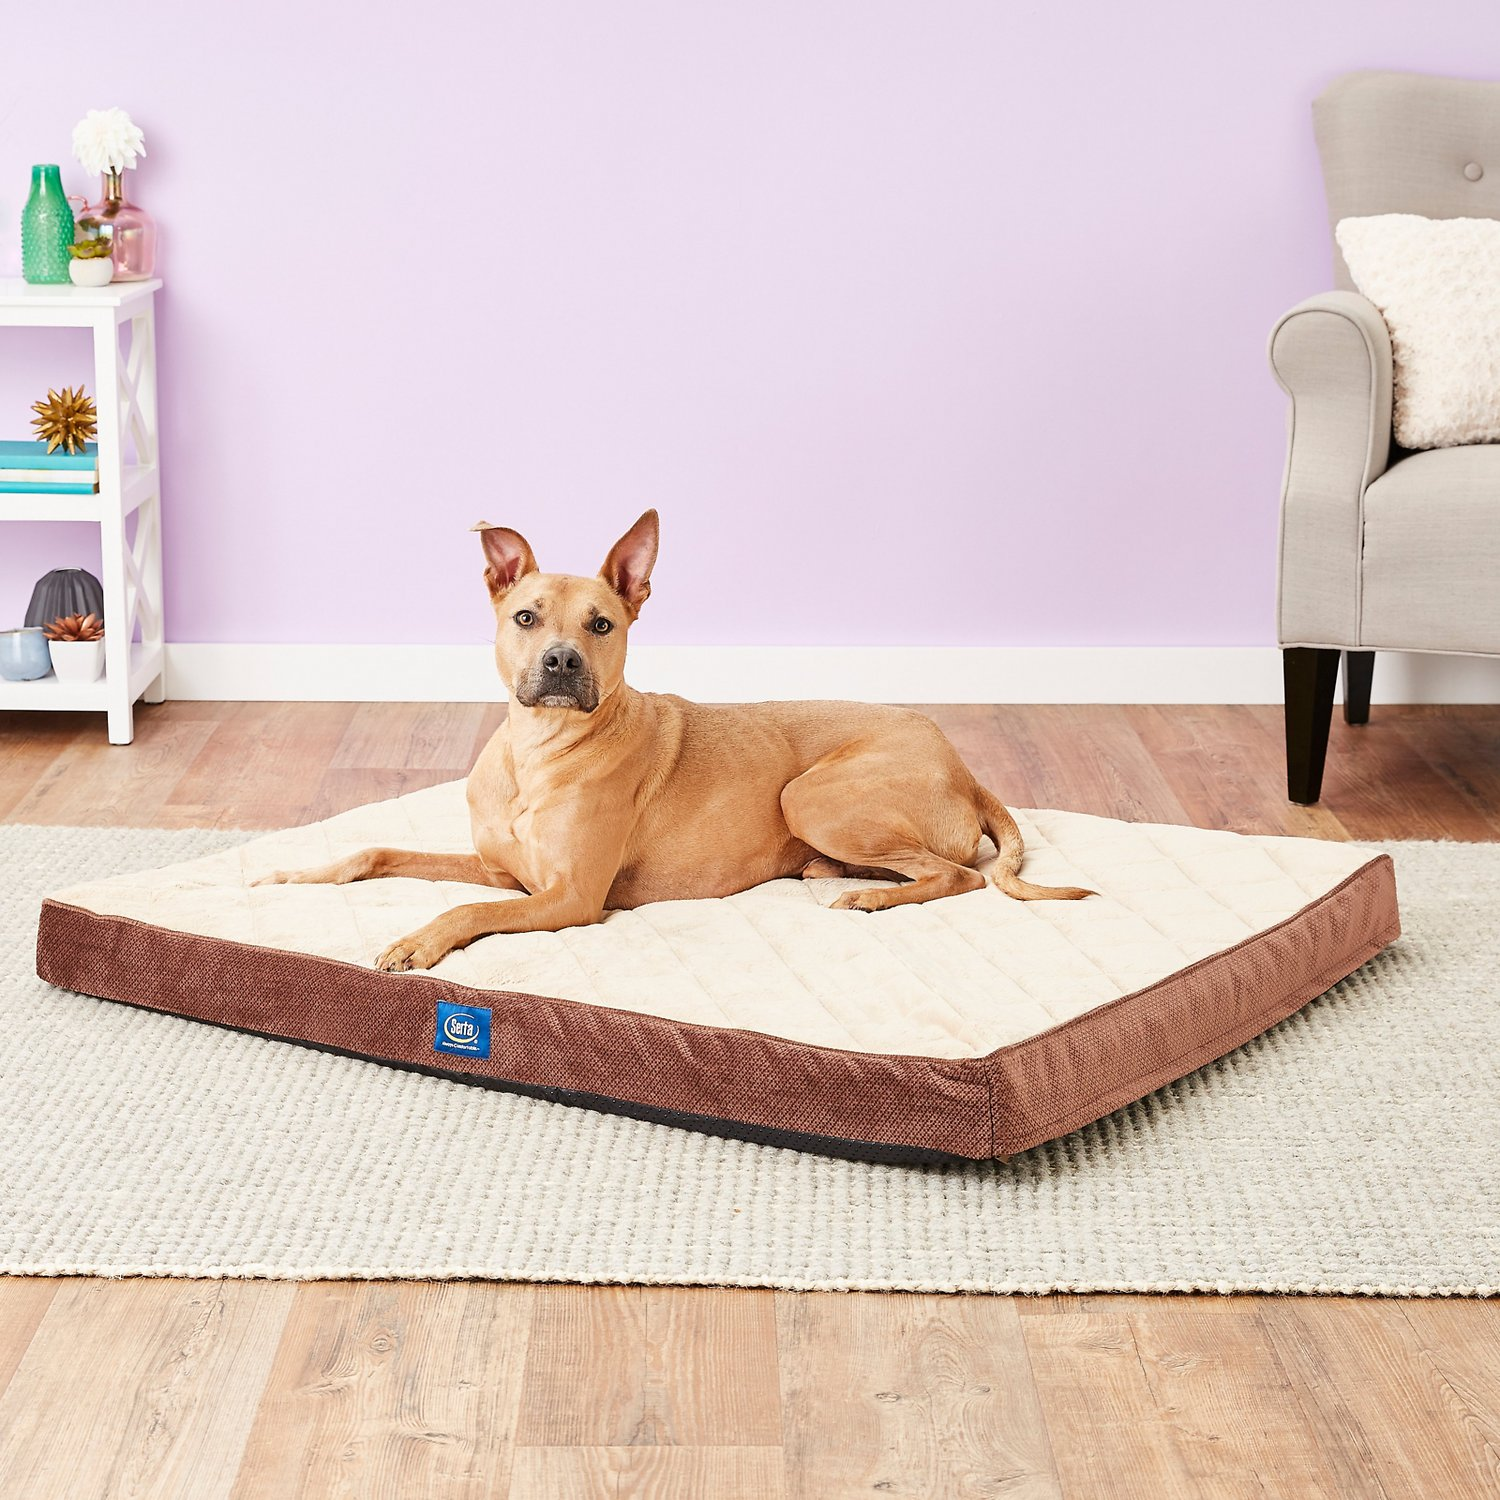 bed mattress hybrid fusion dog icomfort pillow serta top king blue shop plush